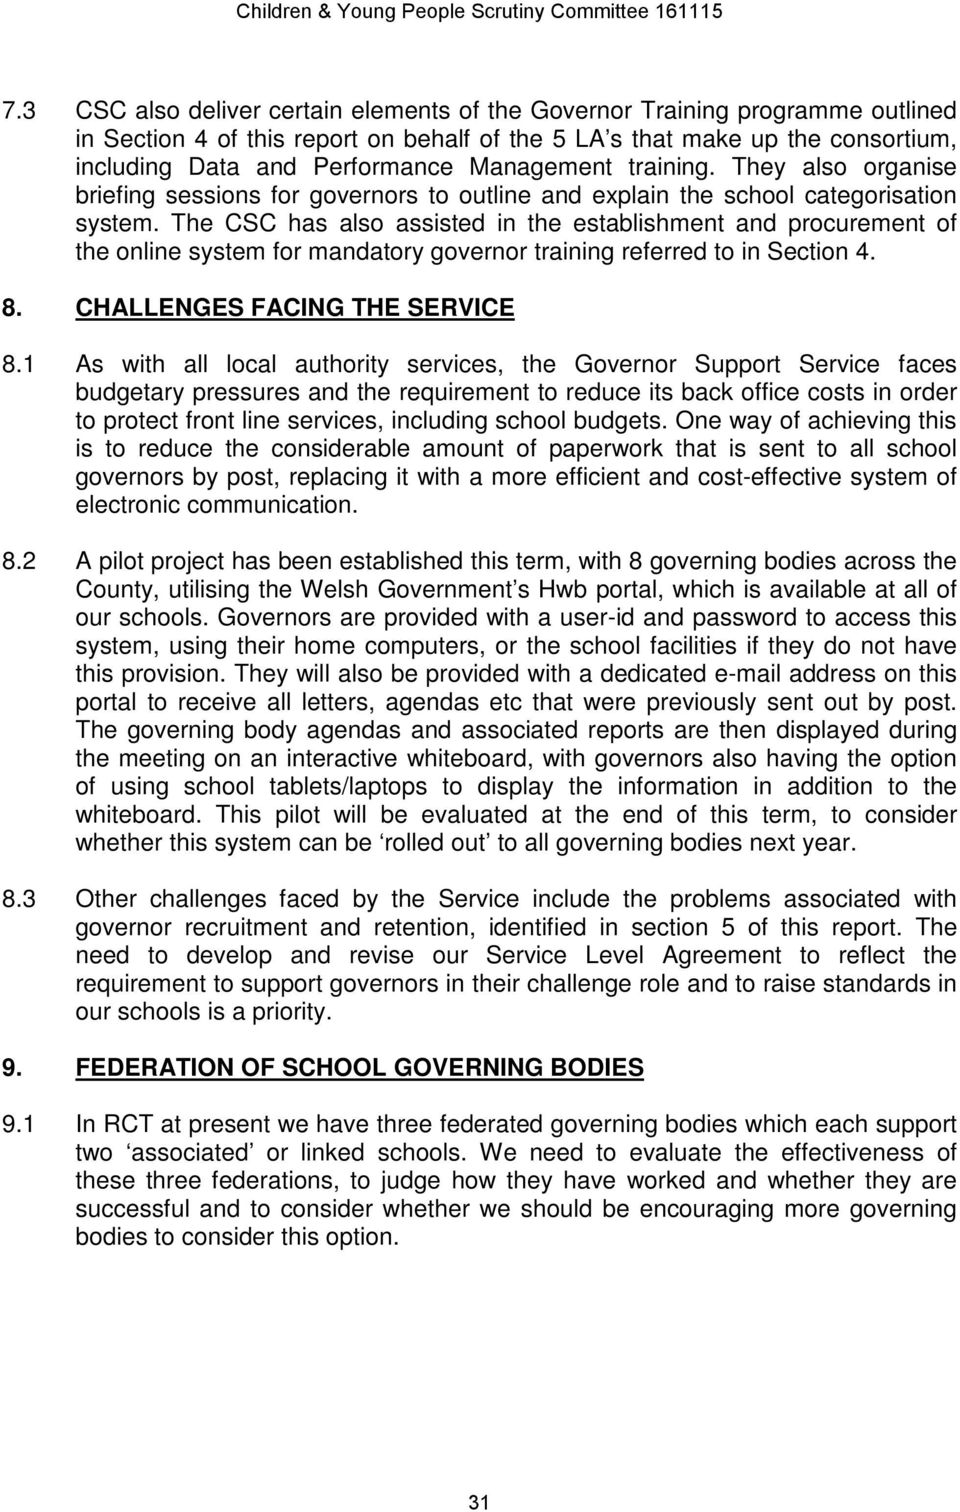 The CSC has also assisted in the establishment and procurement of the online system for mandatory governor training referred to in Section 4. 8. CHALLENGES FACING THE SERVICE 8.